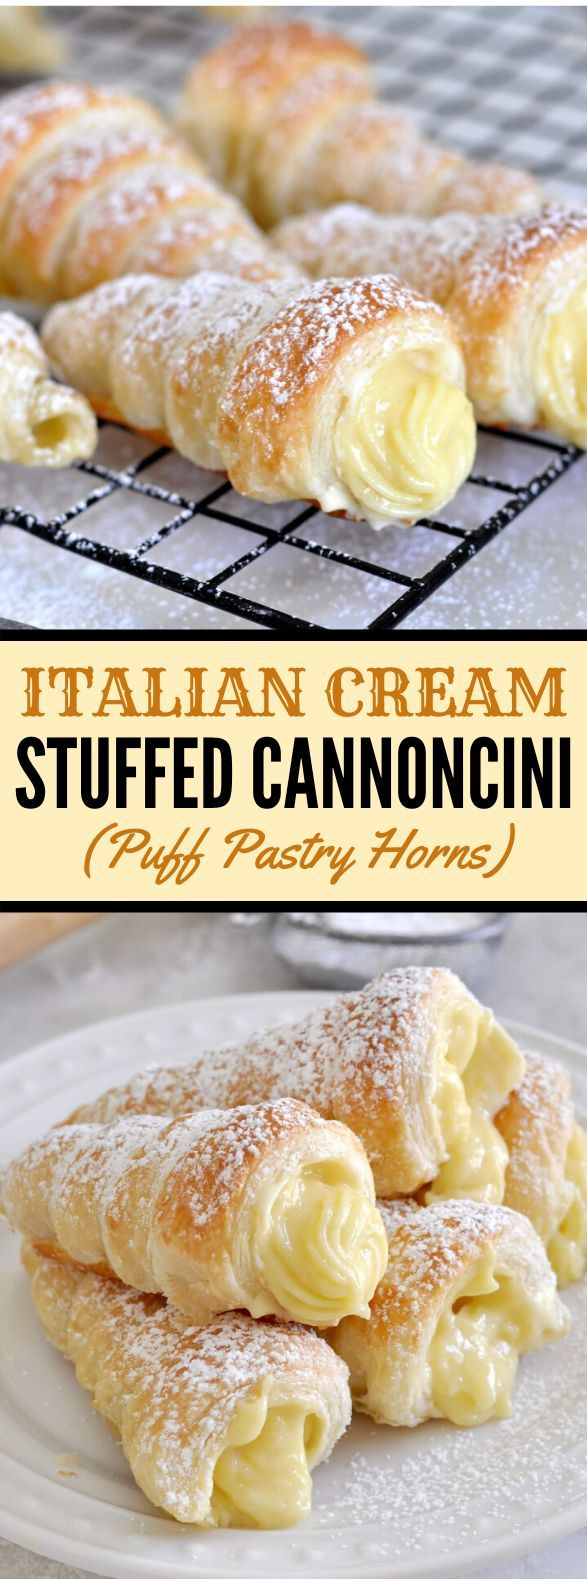 Italian Cream Stuffed Cannoncini (Puff Pastry Horns) #desserts #sweets